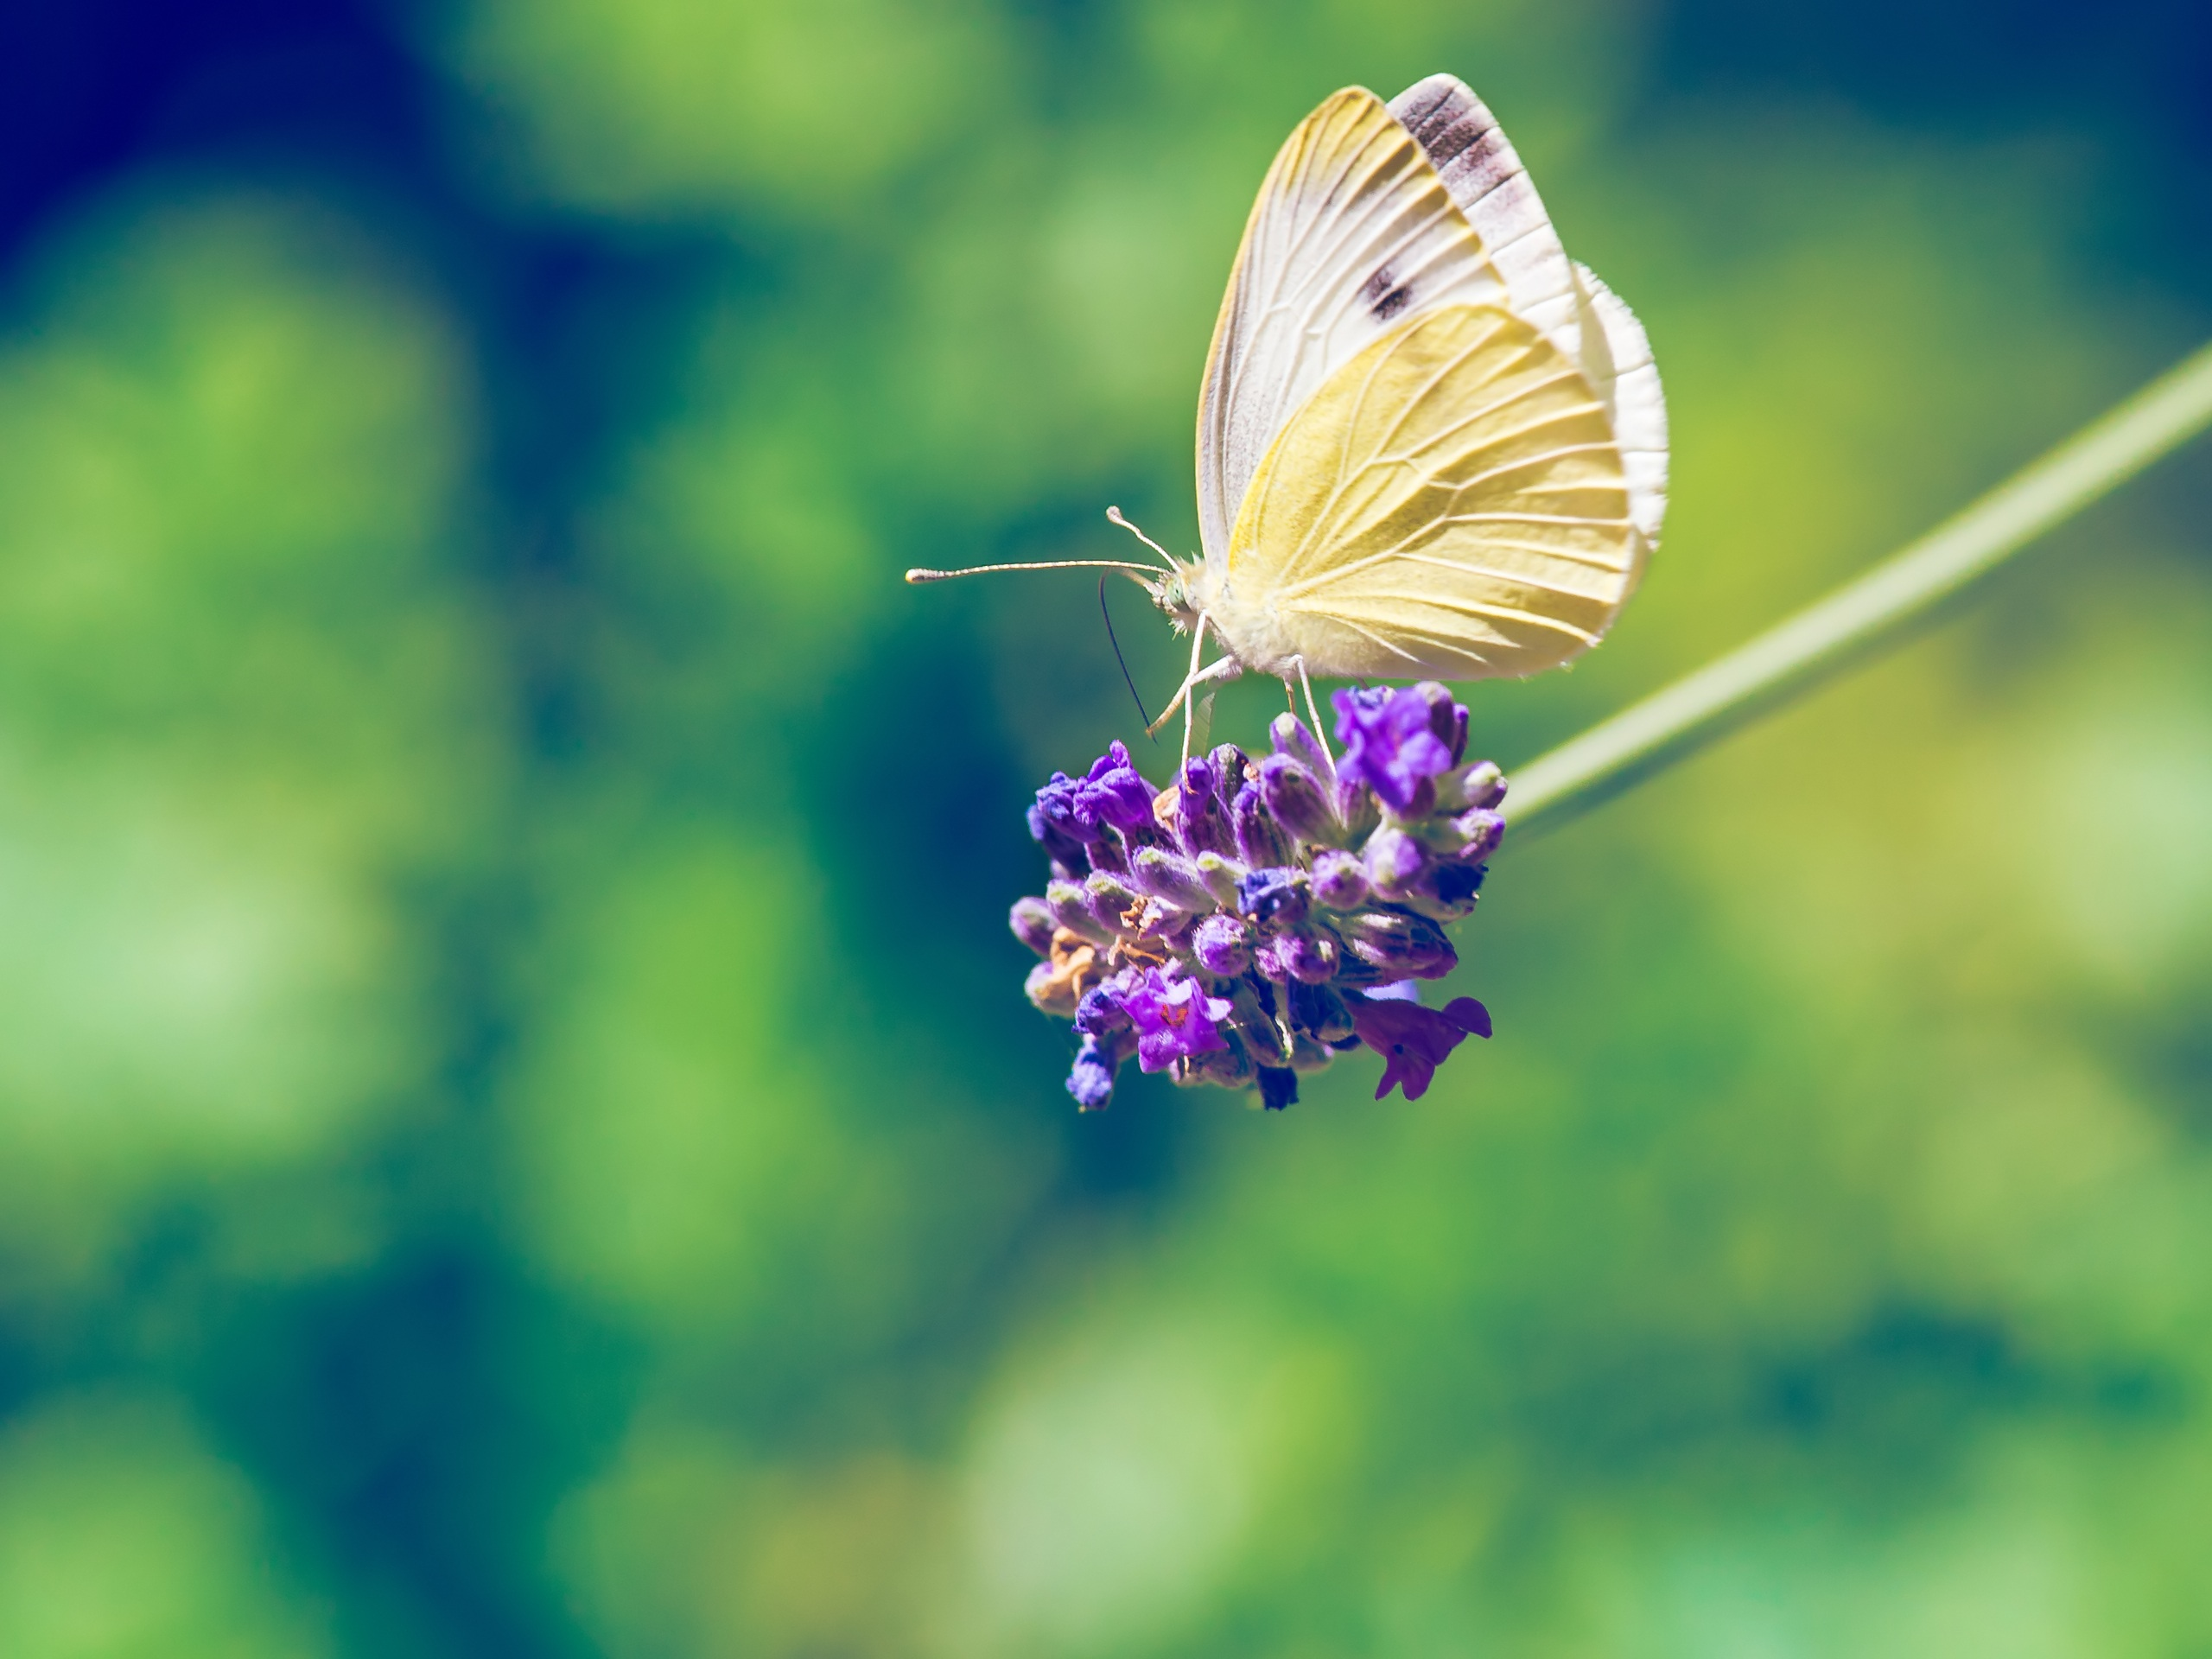 Nature, Blooming, Butterfly, Flower, Fly, HQ Photo